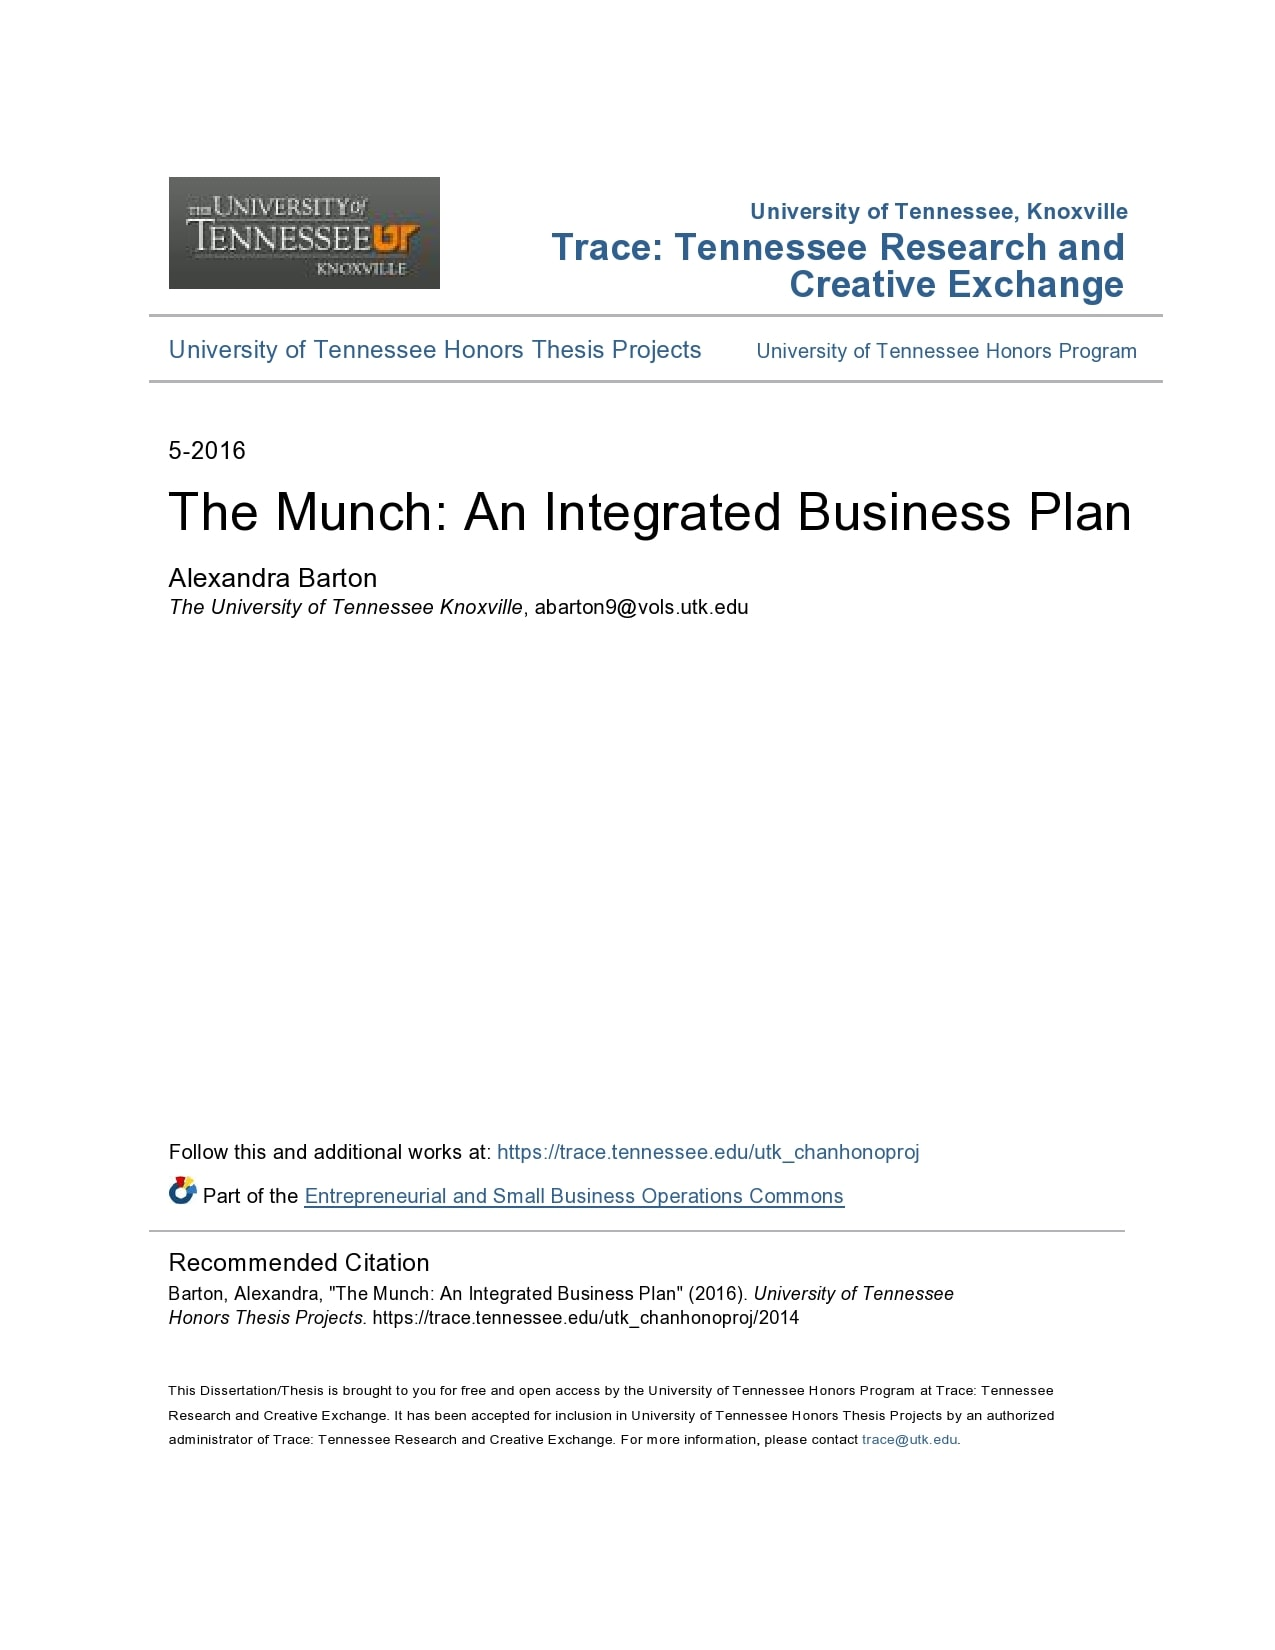 food truck business plan 26